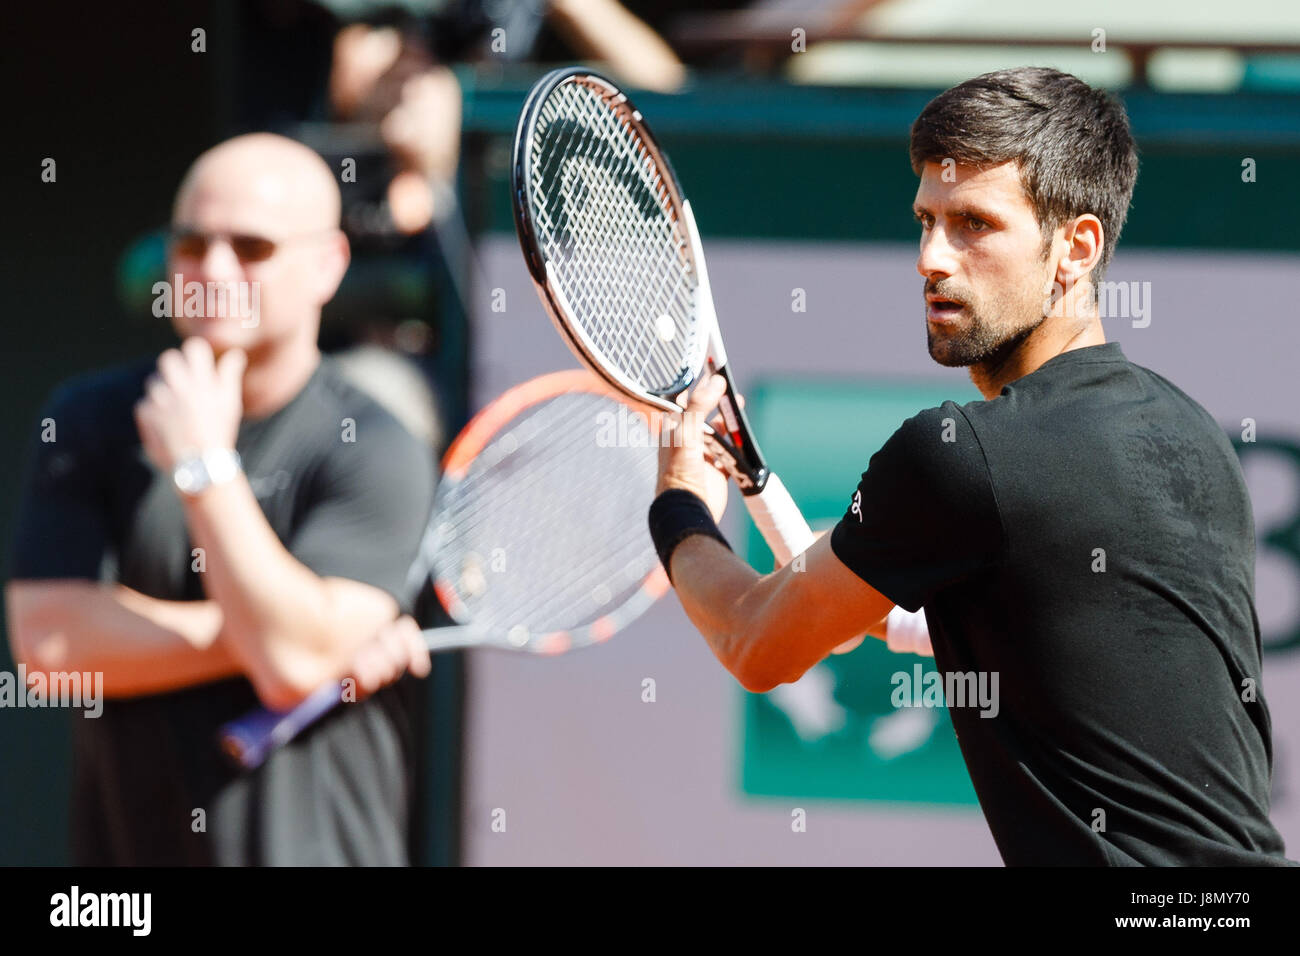 Paris, France, 29th May 2017, Tennis French Open: Novak Djokovic and his new coach Andre Agassi during a practice - Stock Image